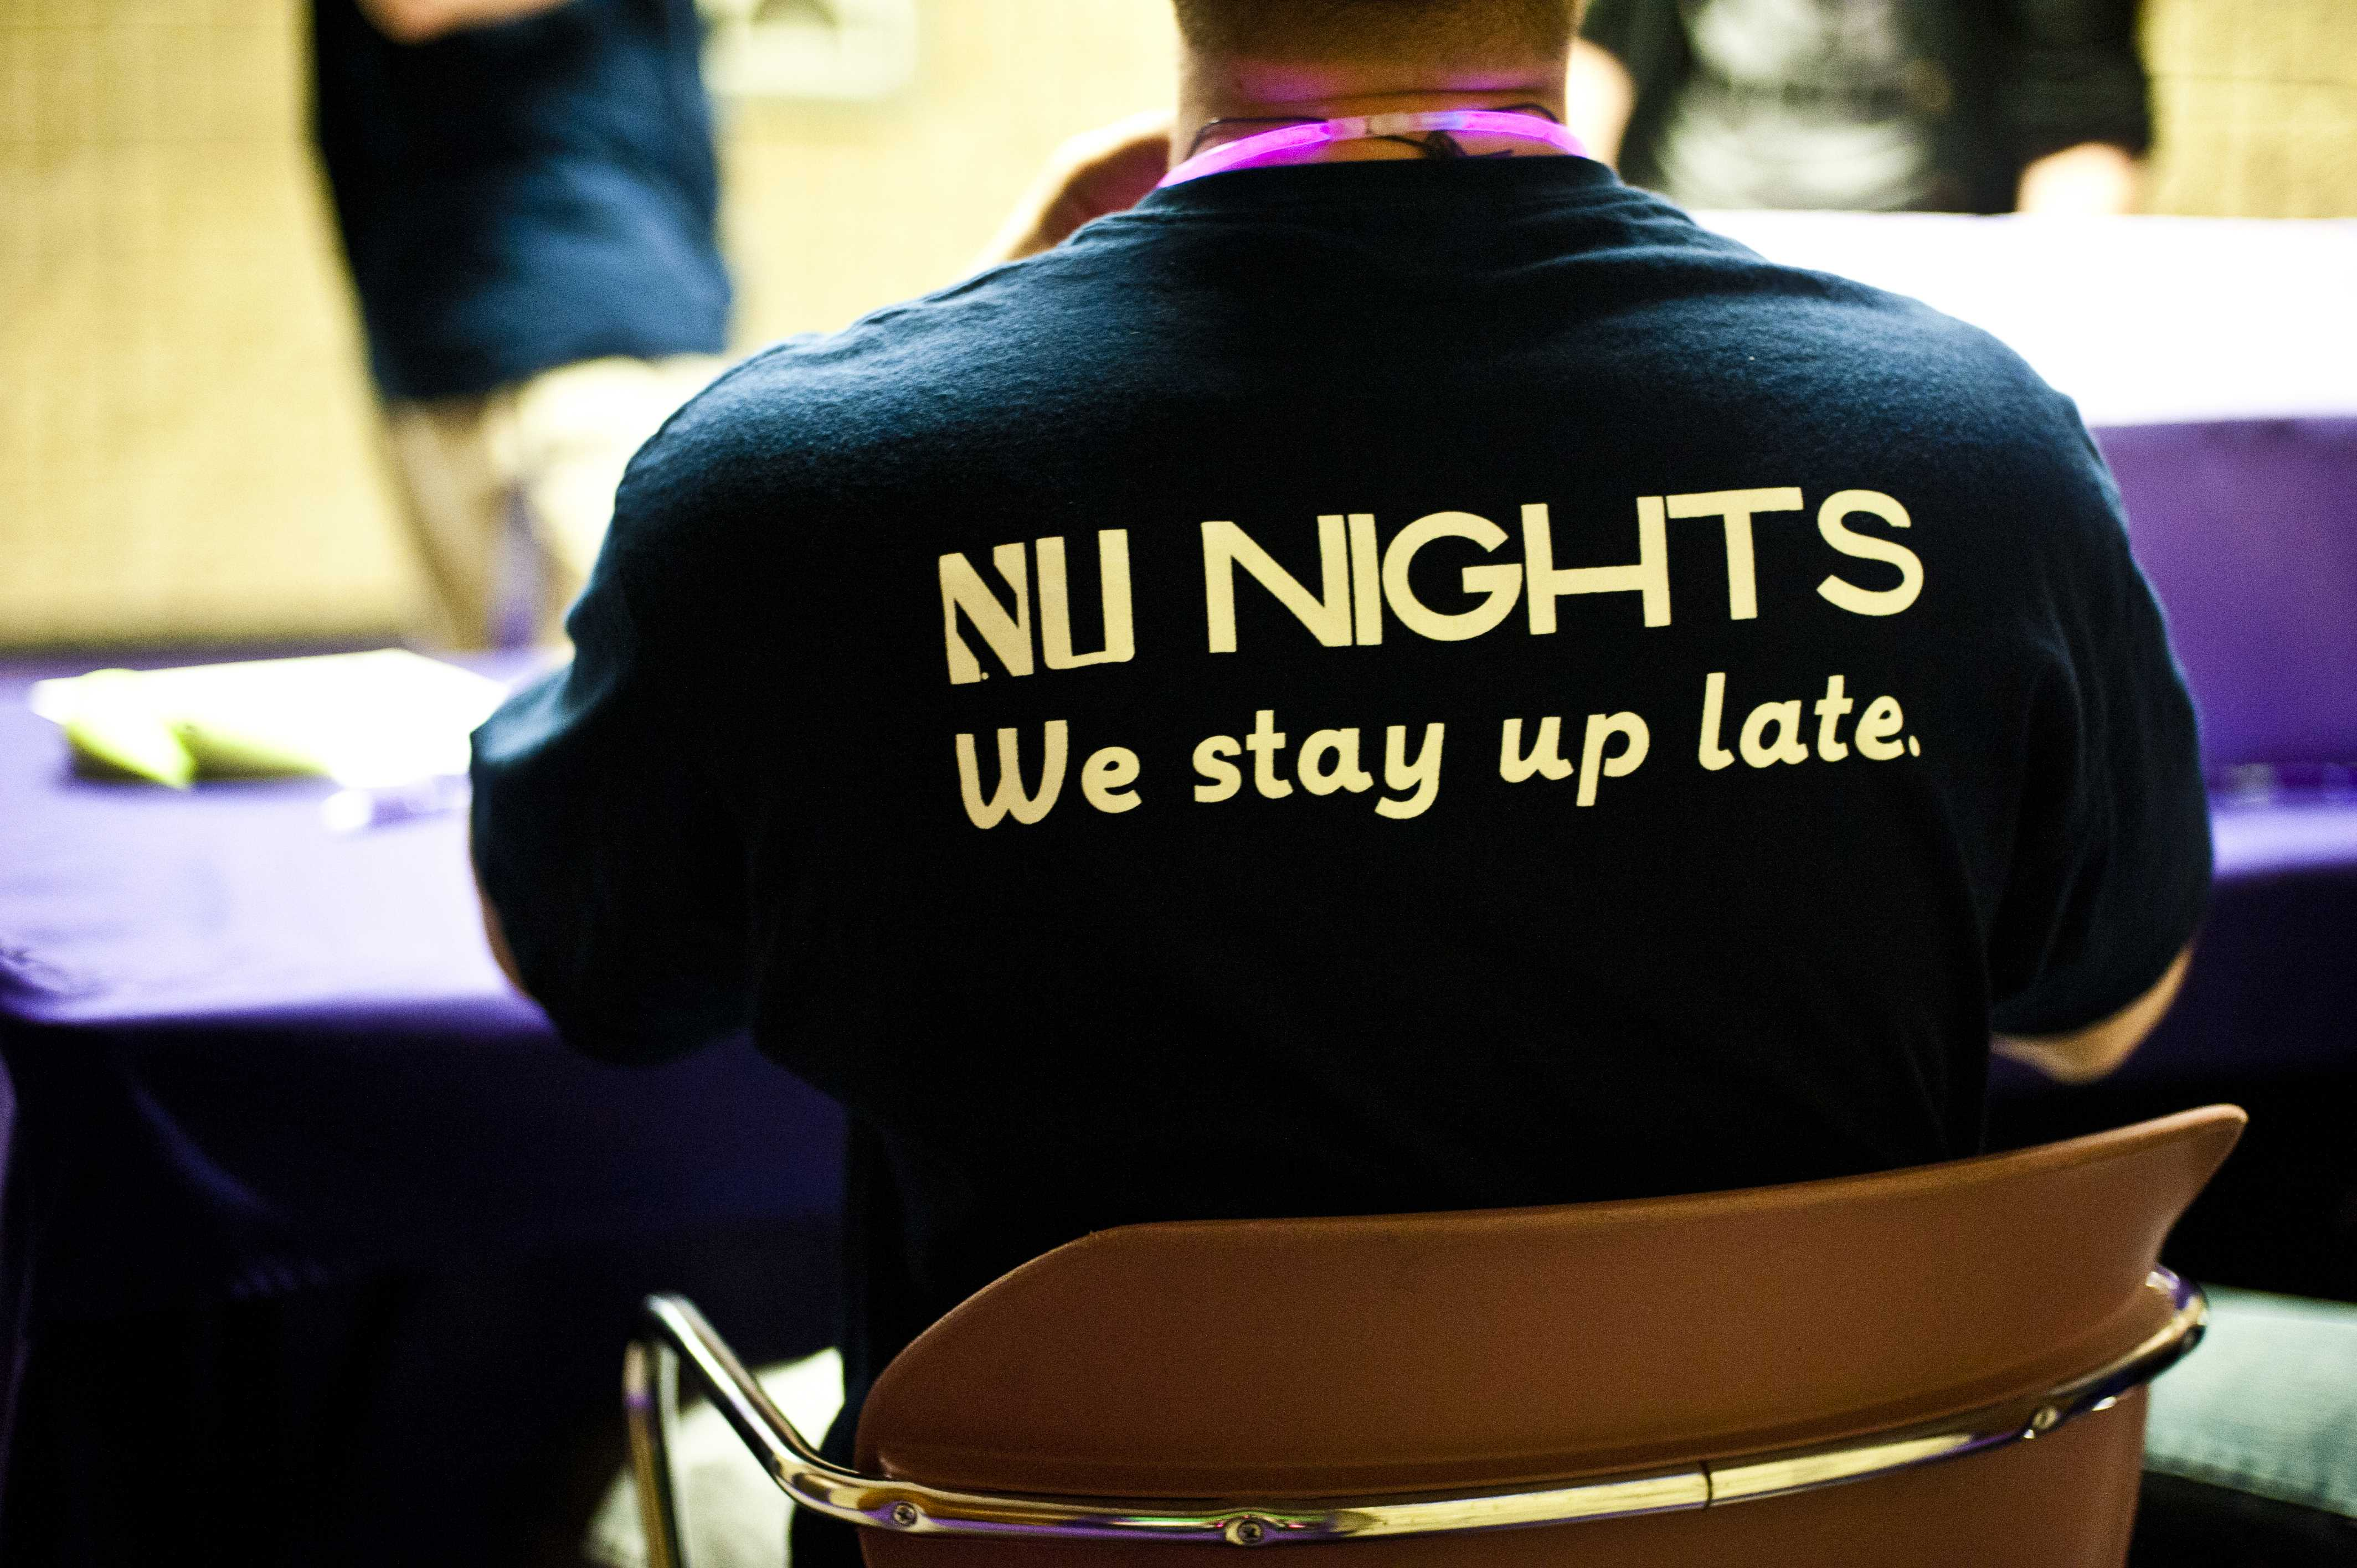 NU Nights hosts late-night programming at Northwestern with the goal of providing a greater sense of community on campus